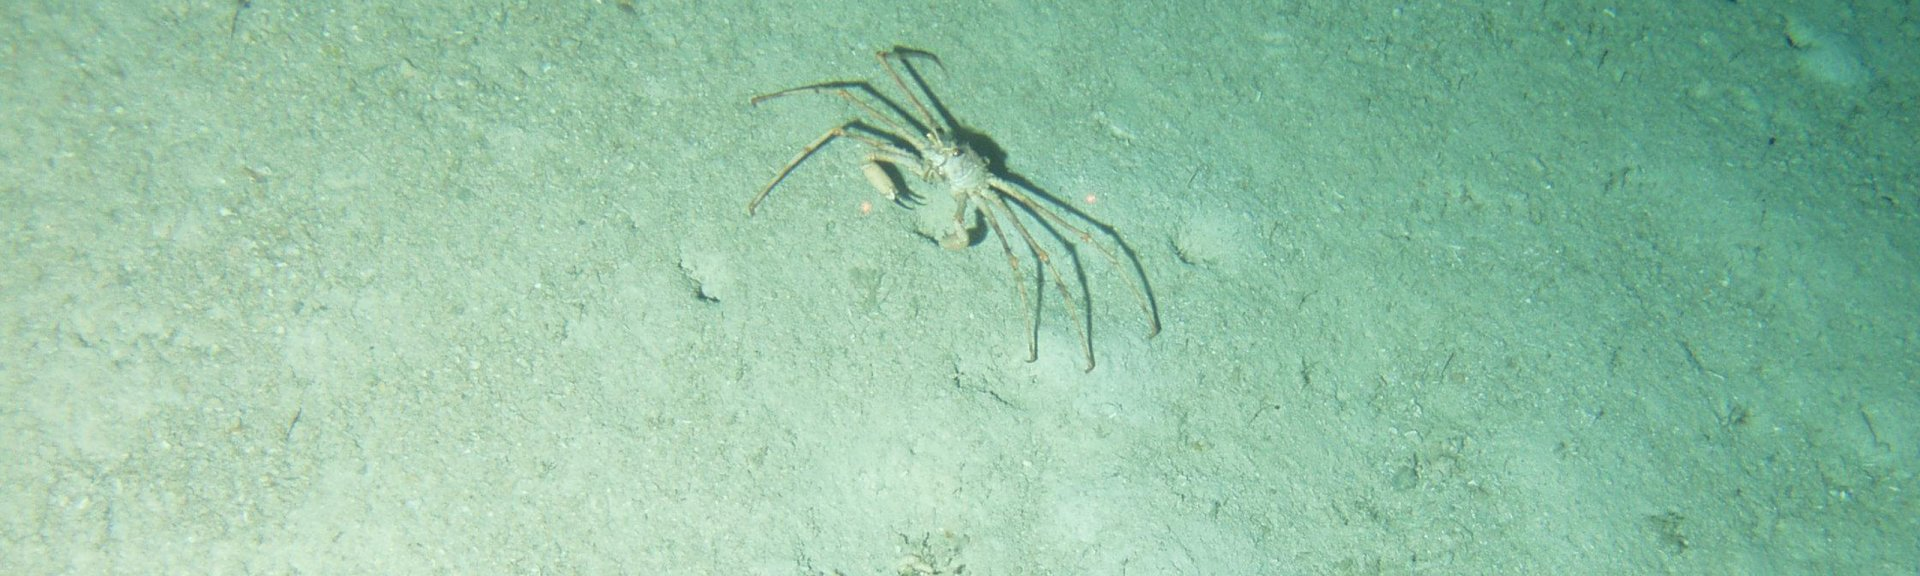 Marine life on the seafloor in the Zeehan Marine Park. Photo courtesy of CSIRO